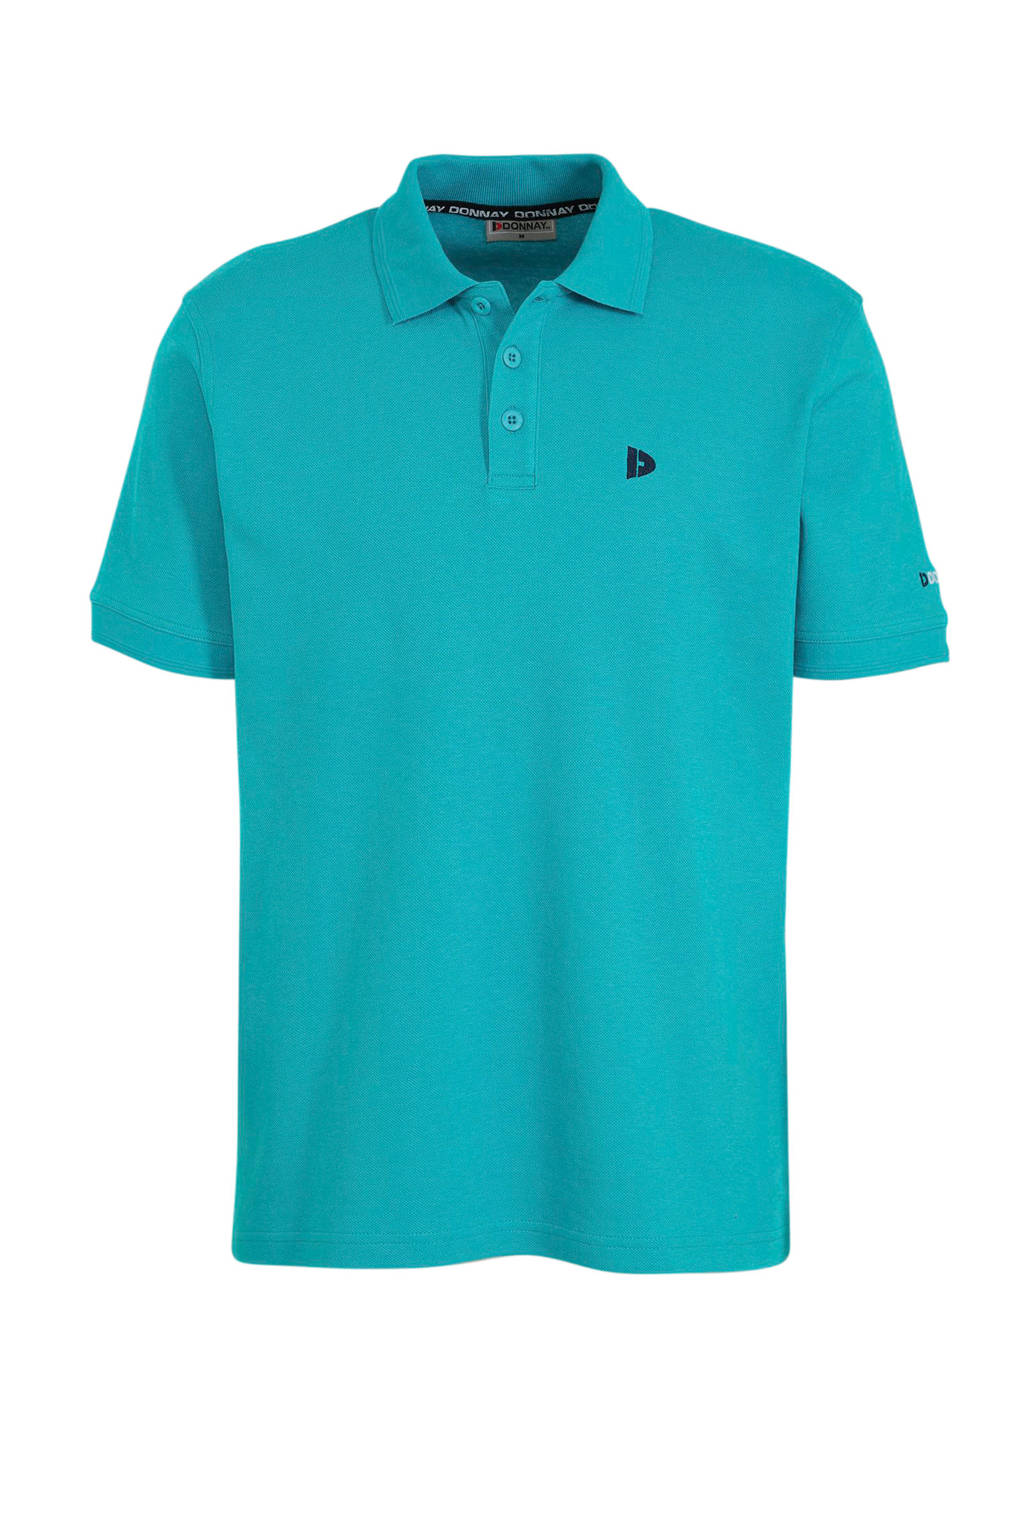 Donnay   sportpolo Noah turquoise, Turquoise